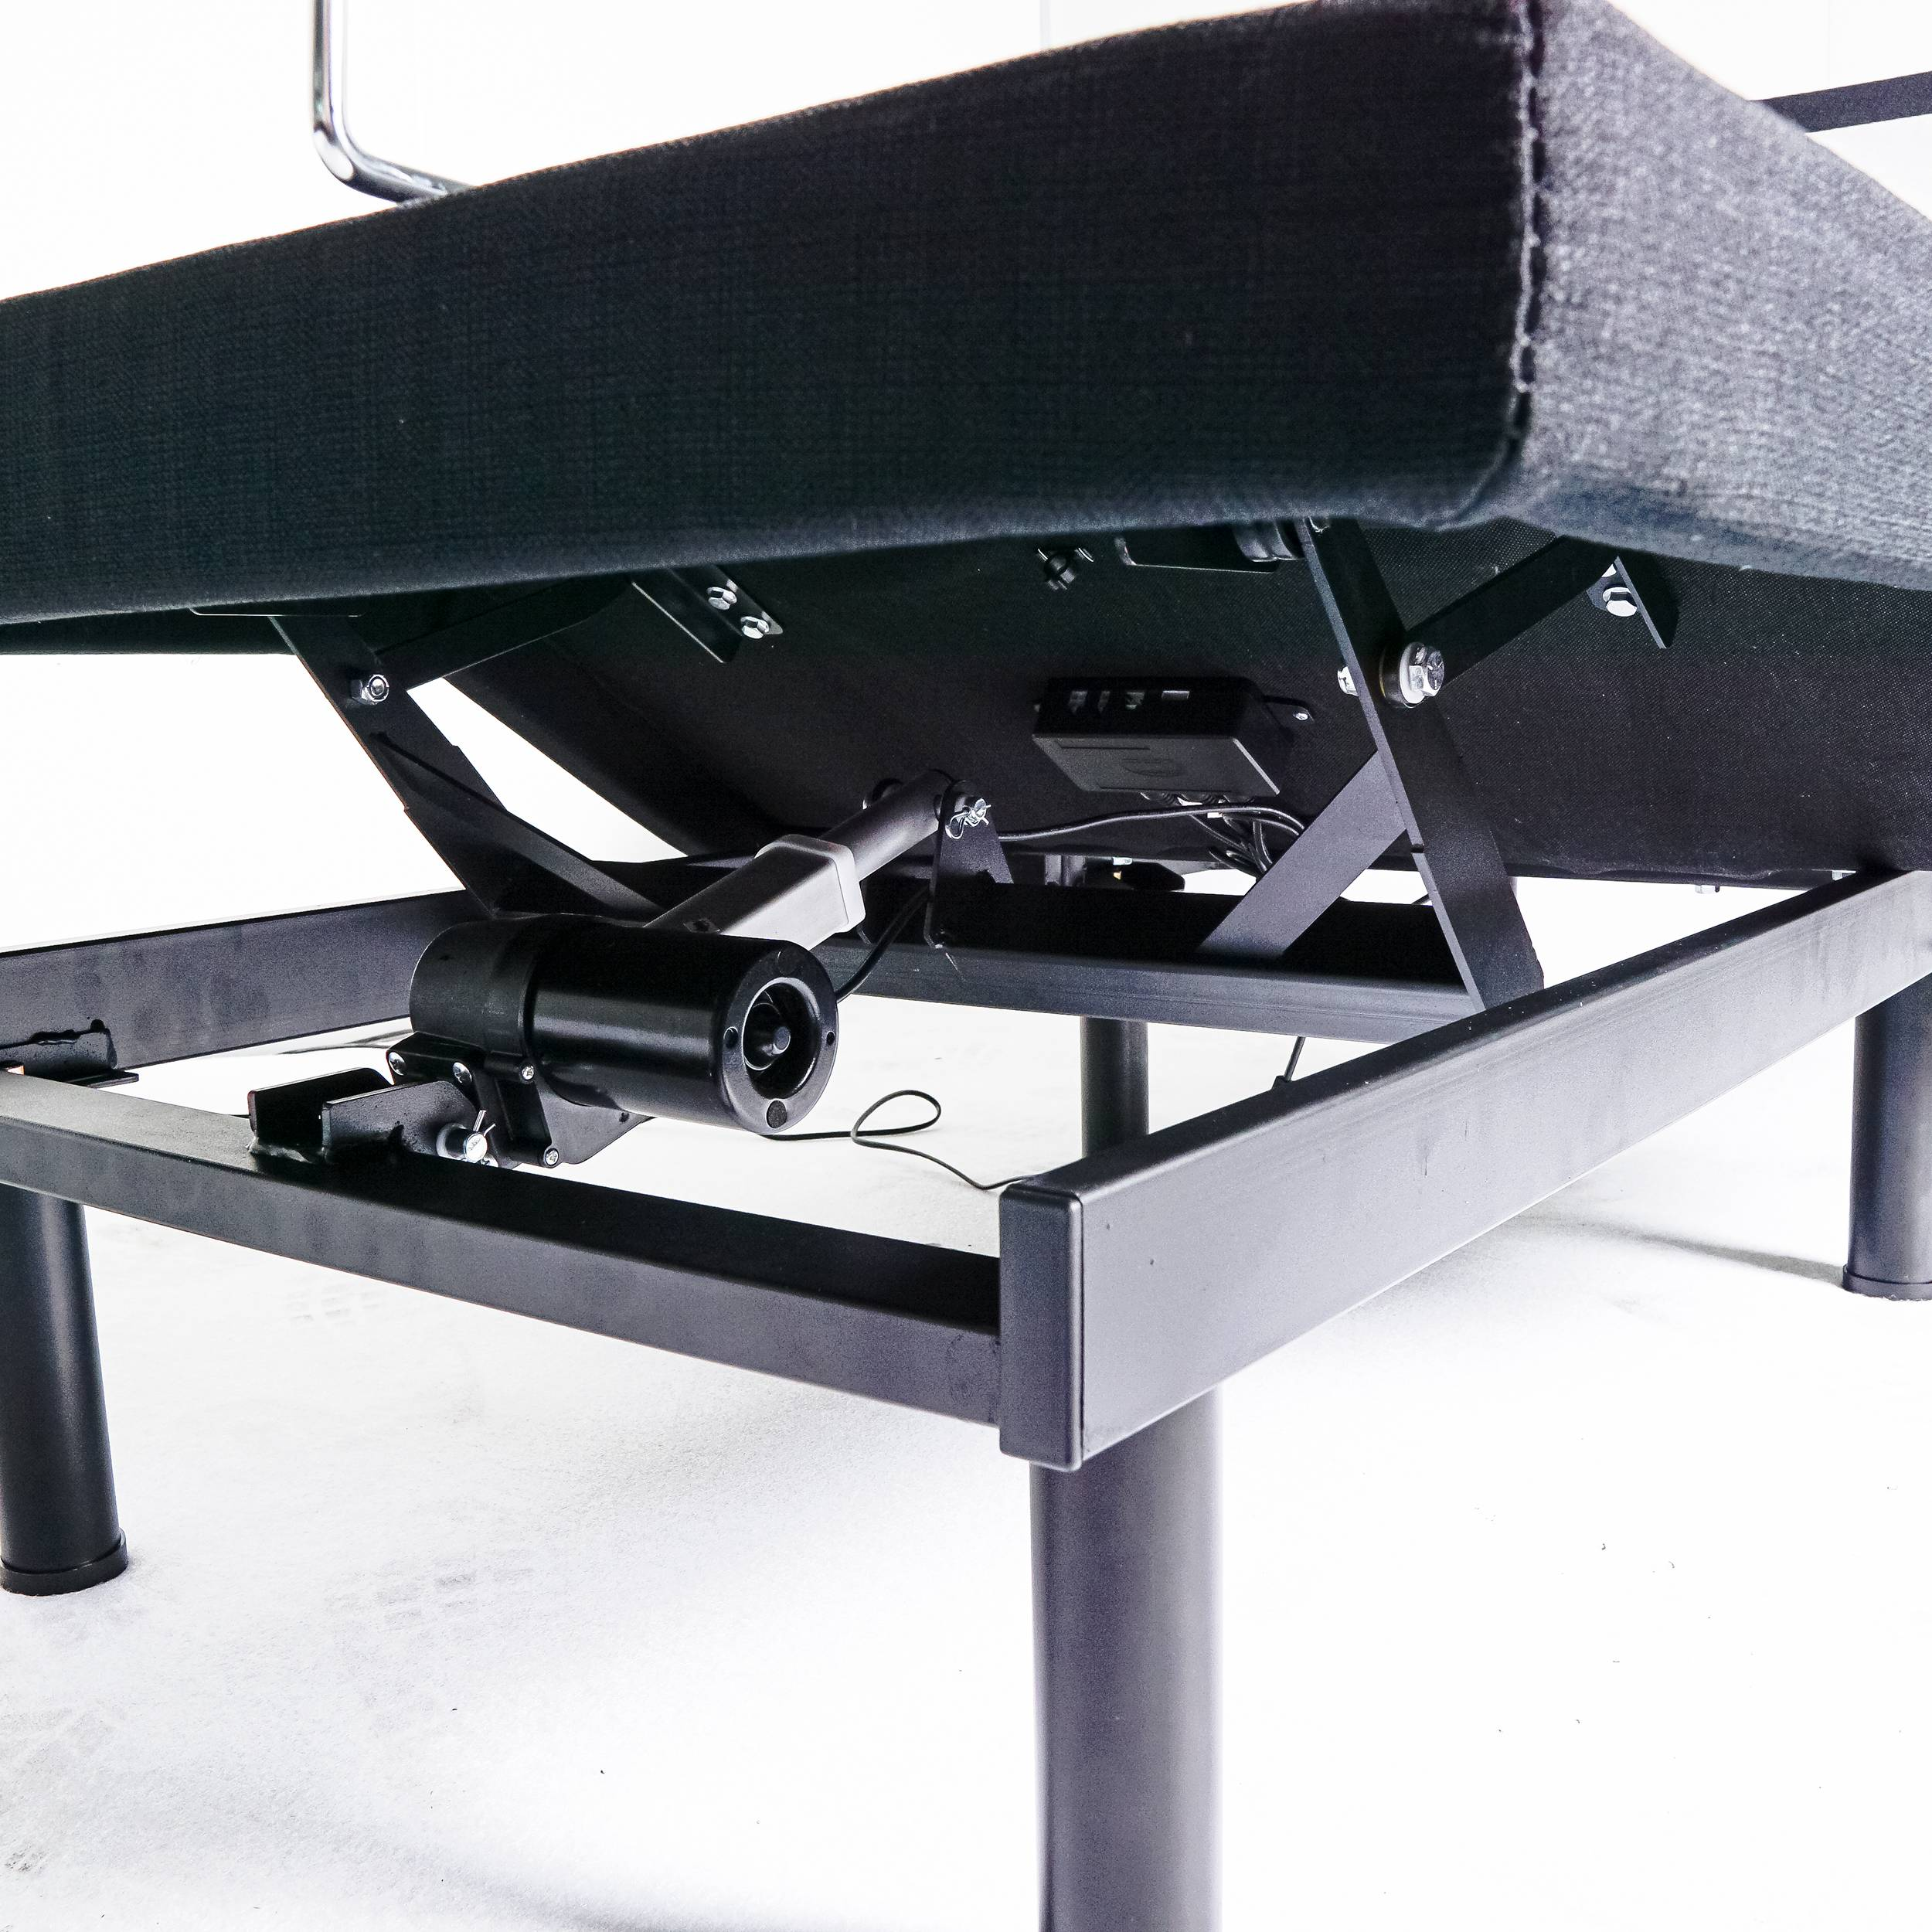 Versatile 2 linear-motors multi-function optional adjustable bed base